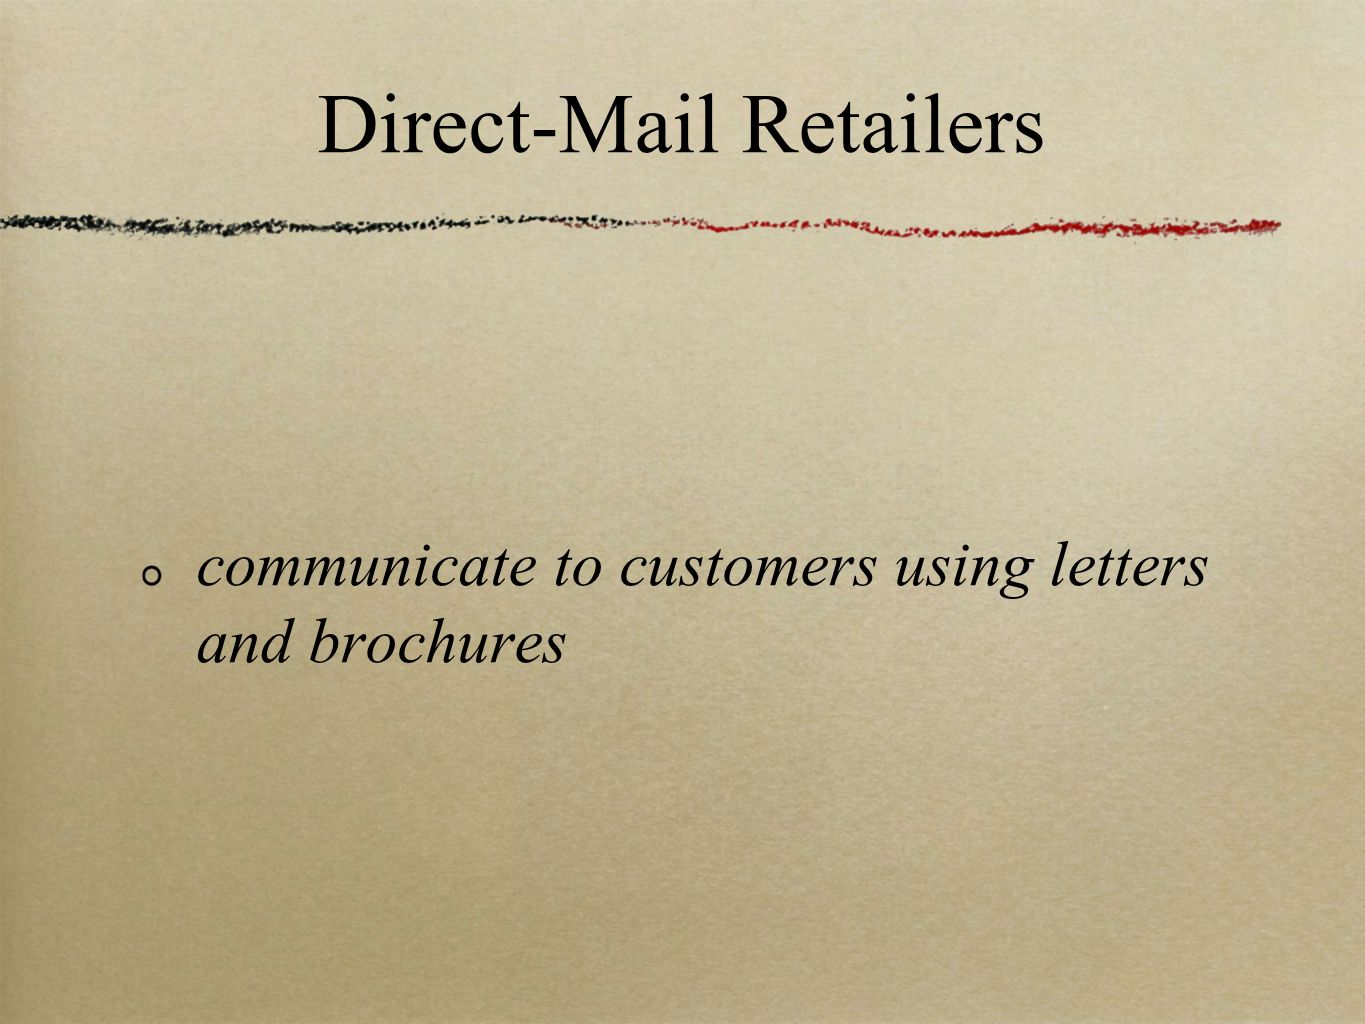 Direct-Mail Retailers